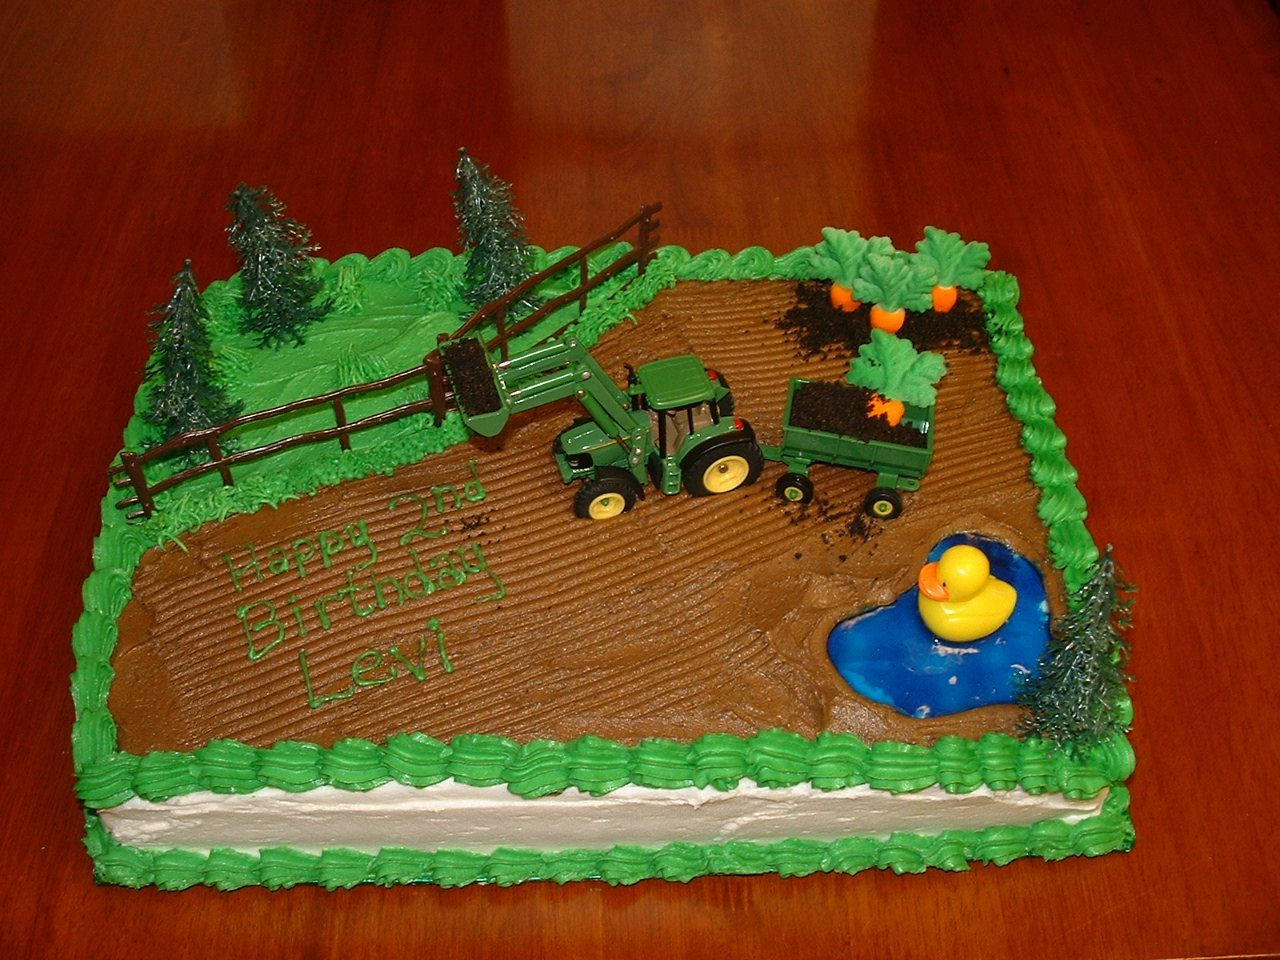 Superb 30 Awesome Photo Of Tractor Birthday Cakes Birijus Com Funny Birthday Cards Online Fluifree Goldxyz